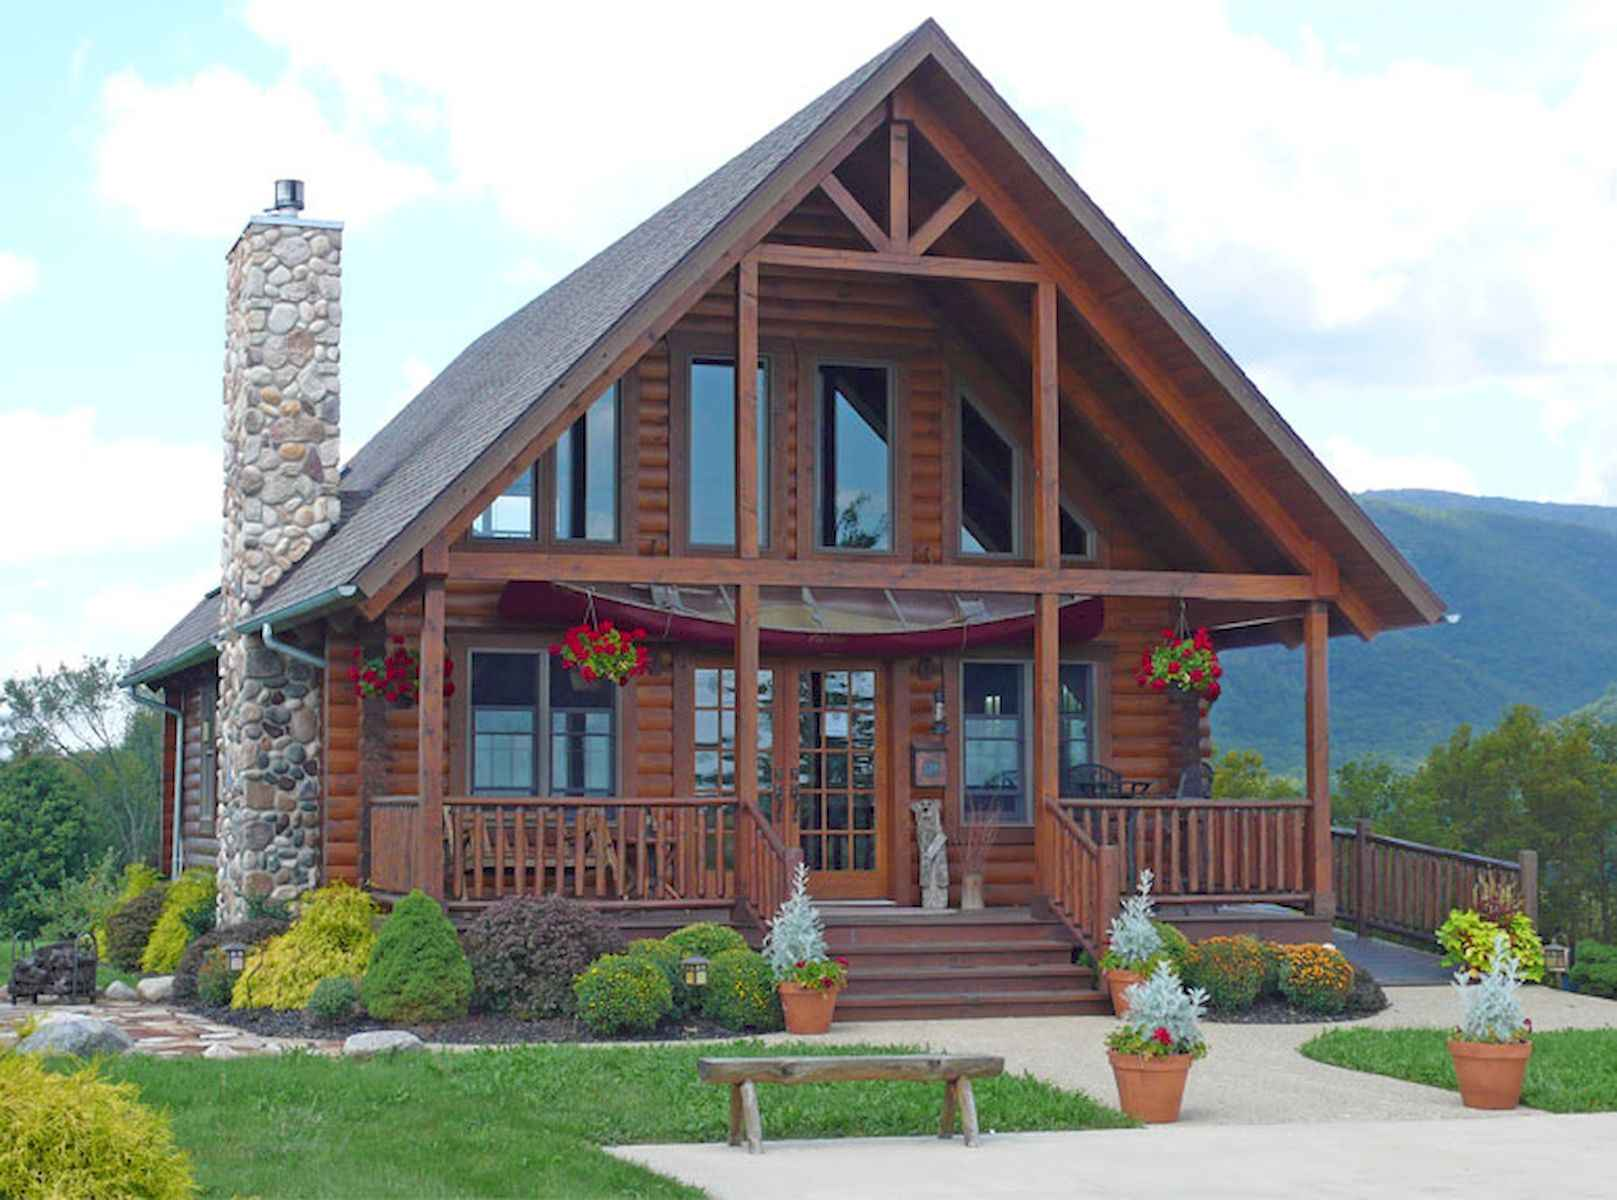 60 Rustic Log Cabin Homes Plans Design Ideas And Remodel (26)